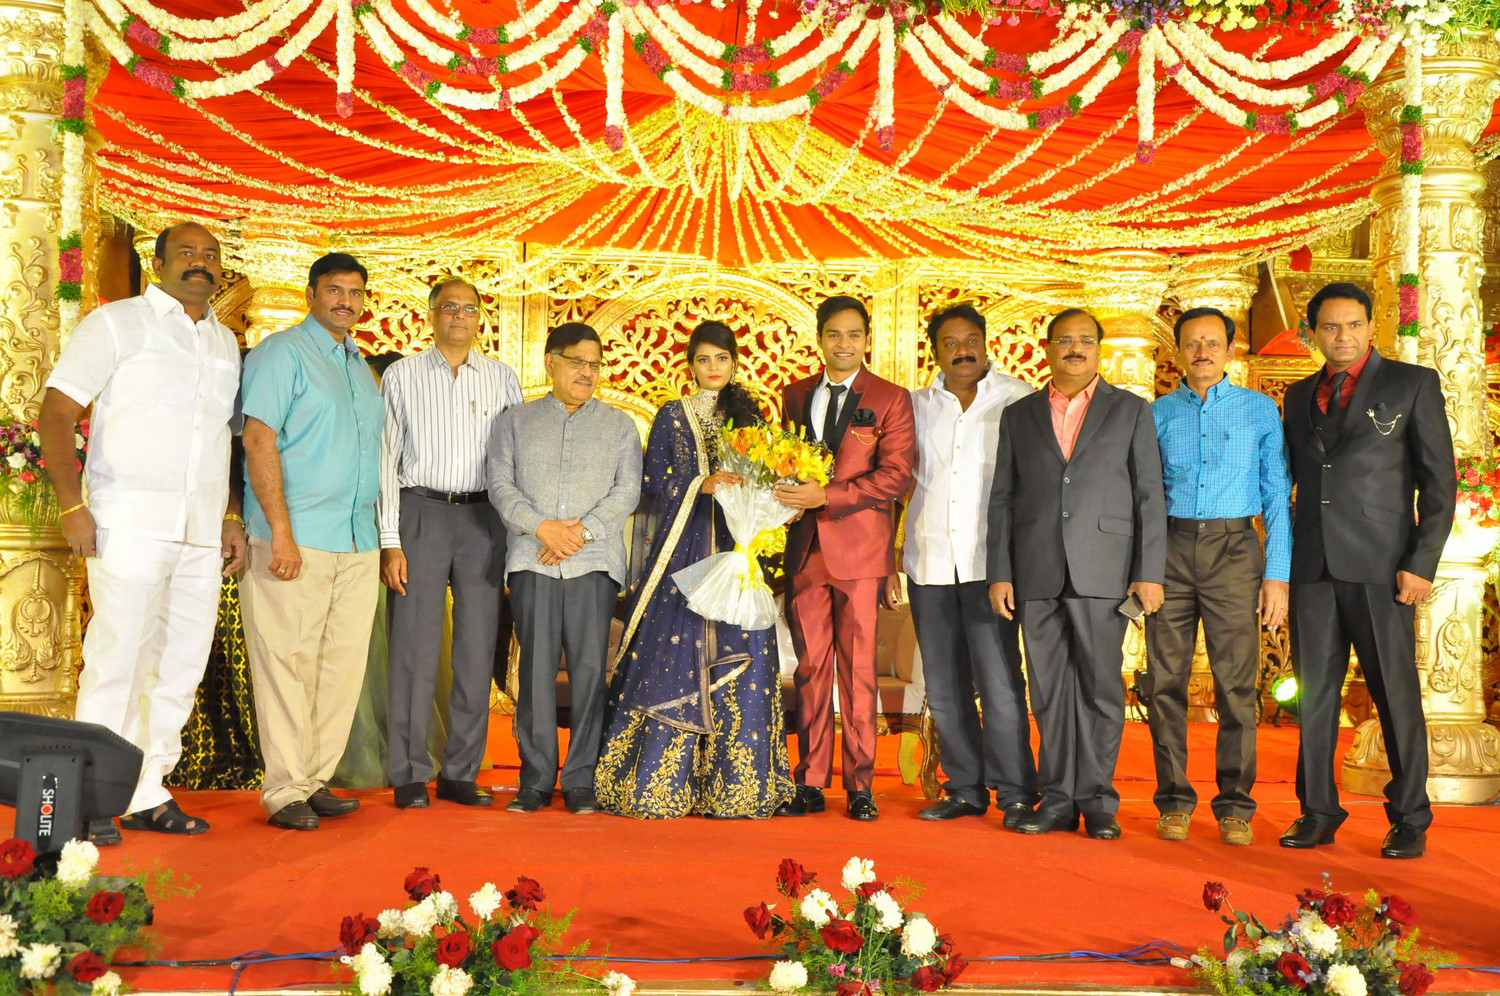 Wedding Reception Event Organisers In Hyderabad